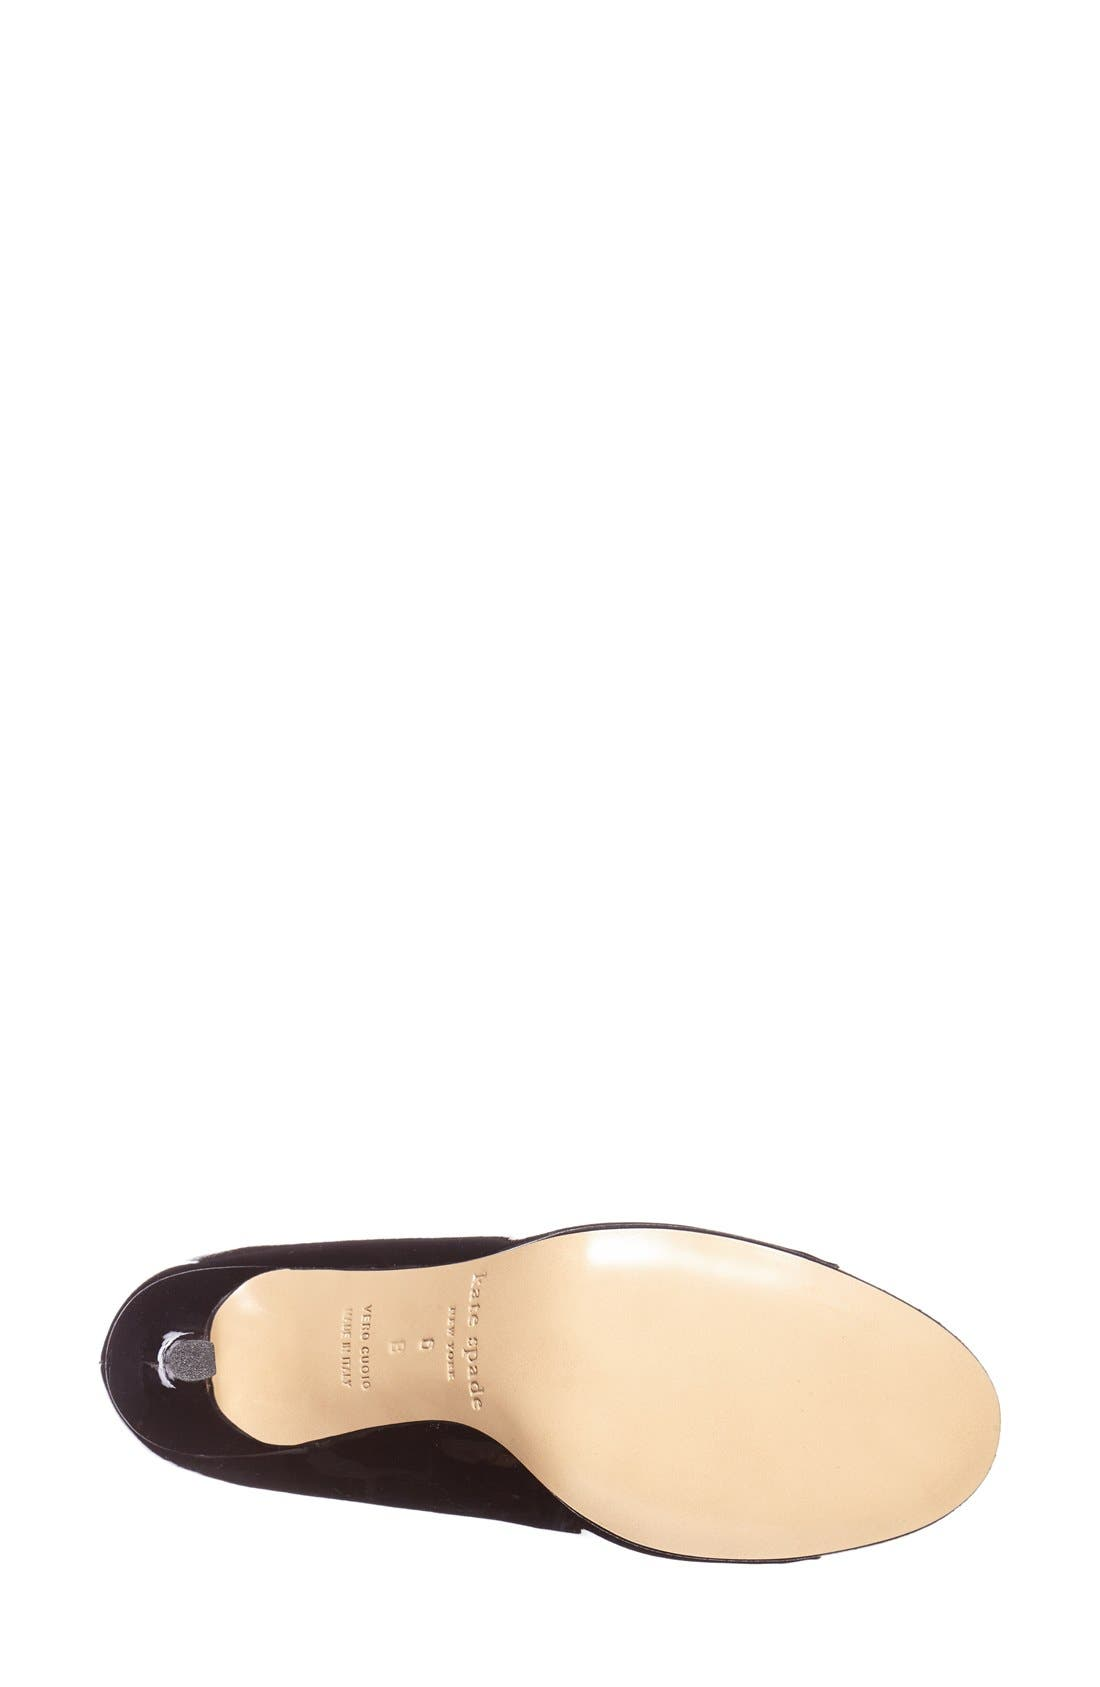 Alternate Image 4  - kate spade new york 'keys' pump (Women)